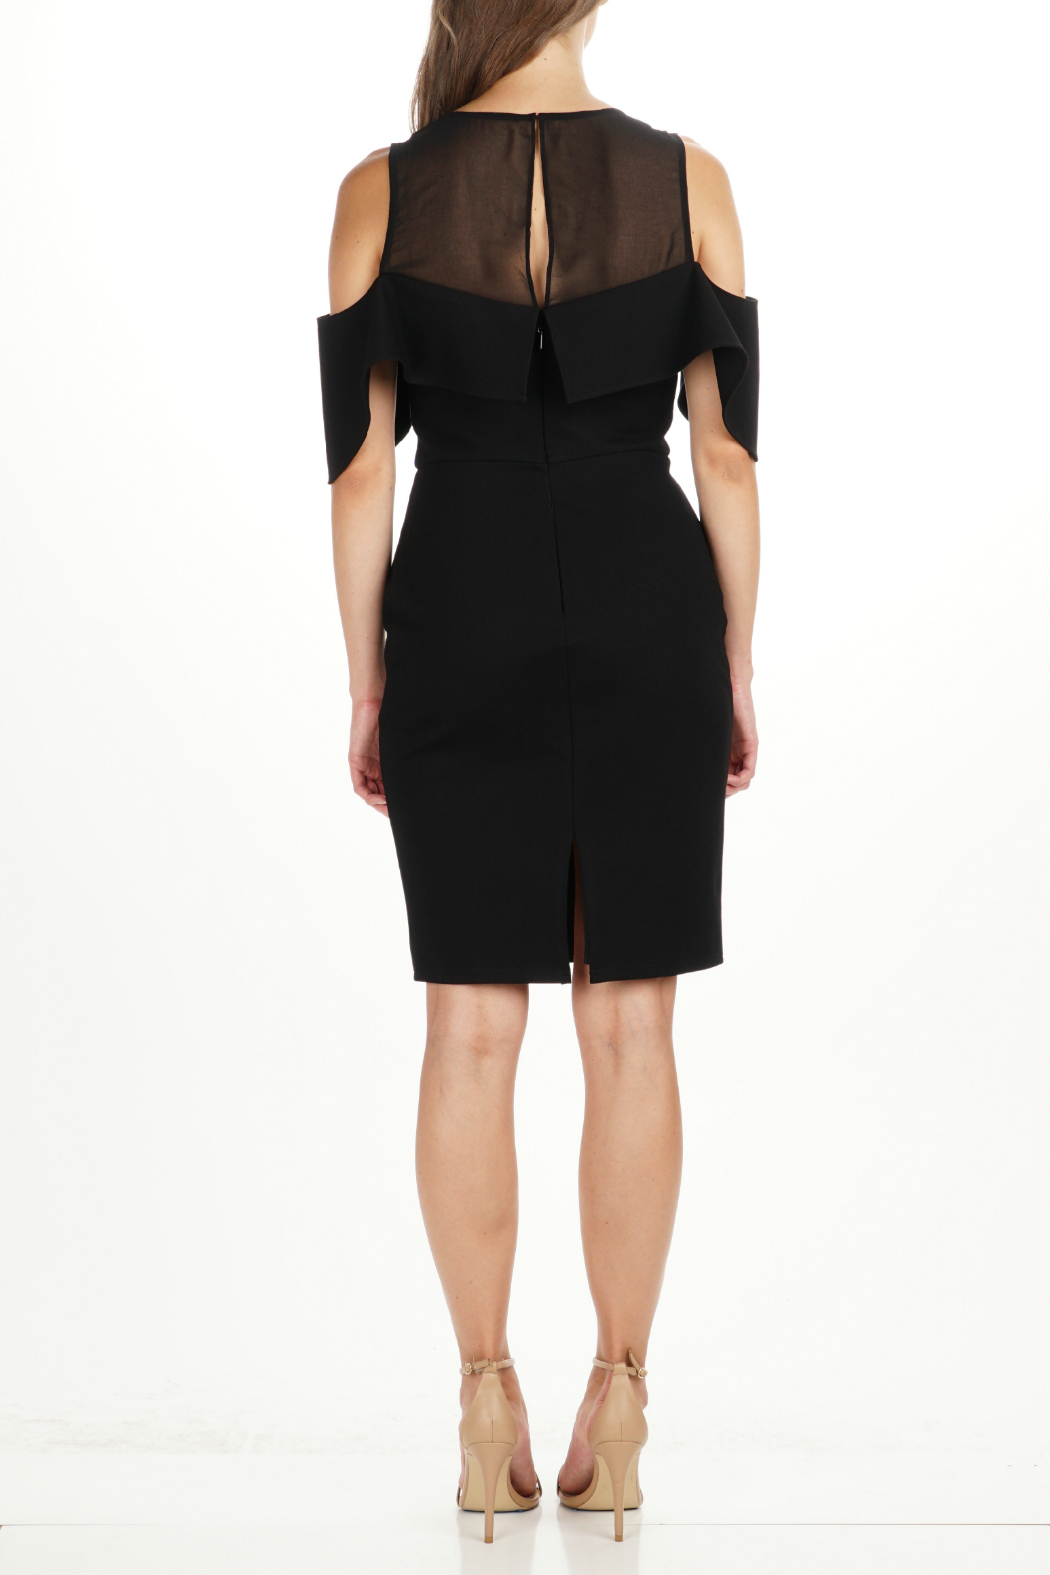 Adelyn Rae Luz OTS Illusion Neck Dress - Front Full Image